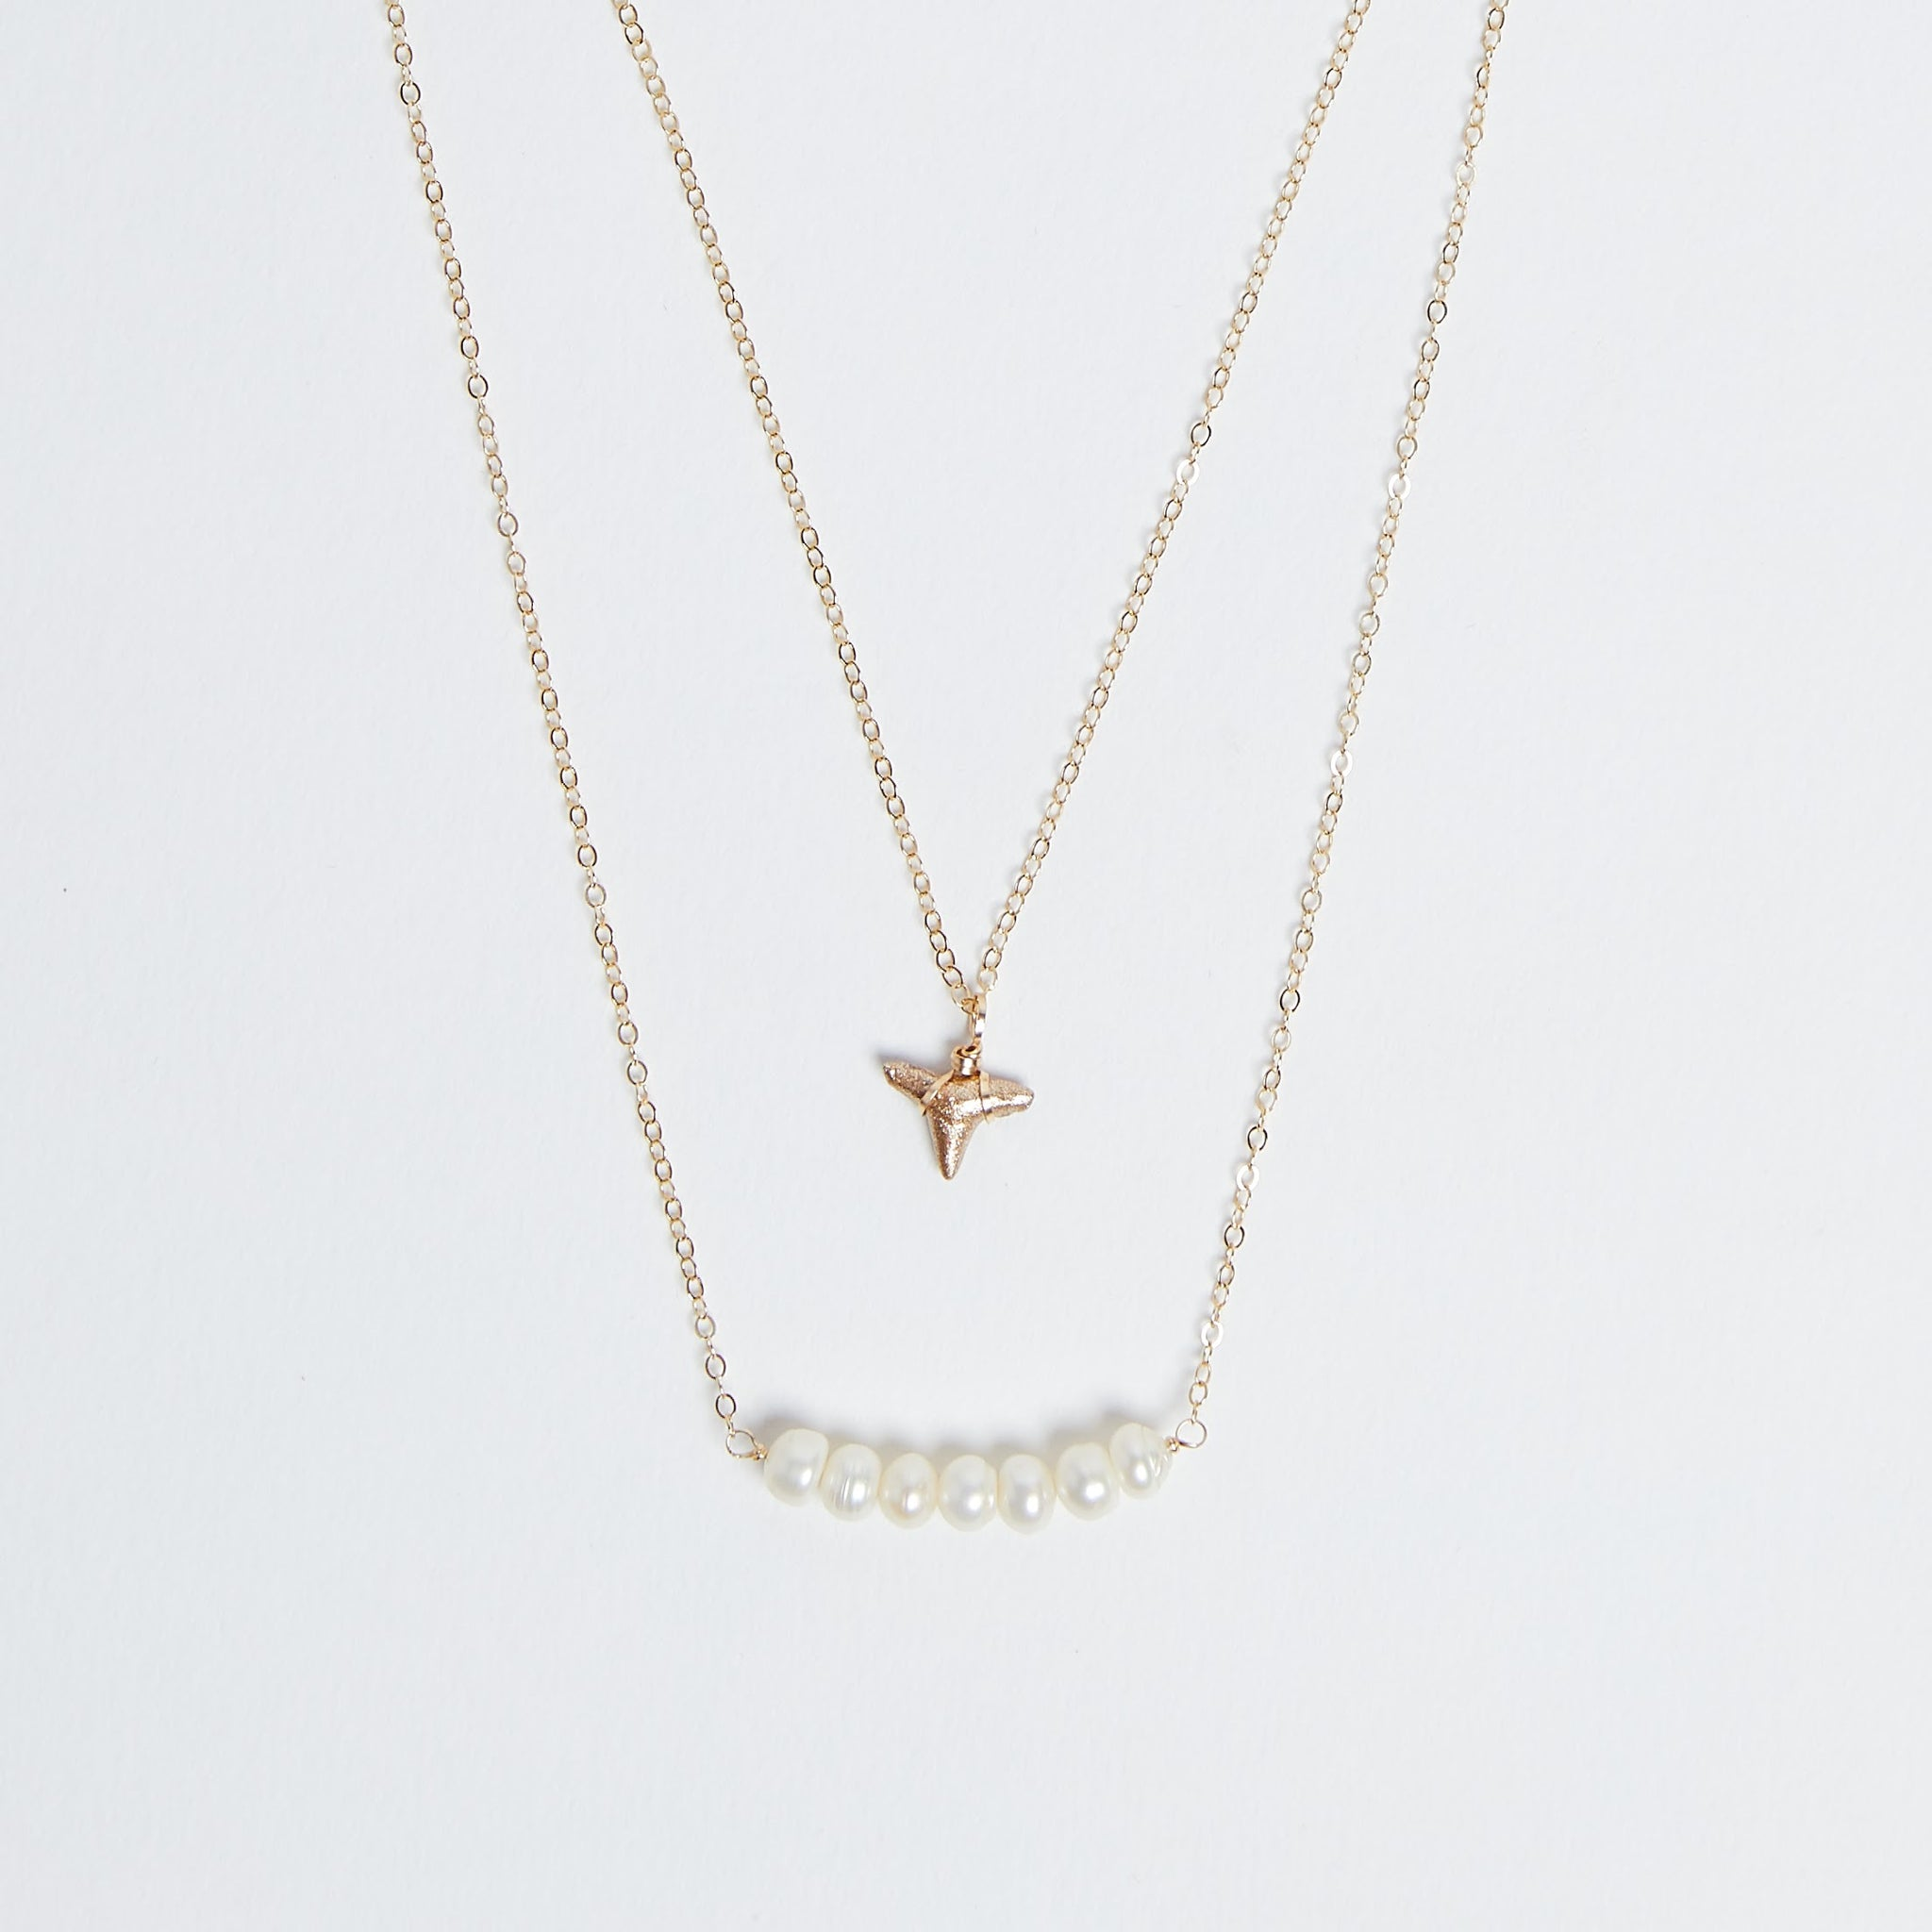 Saltwater Reign - Foxy Fossils double layer gold shark tooth necklace with freshwater pearls bar pendant